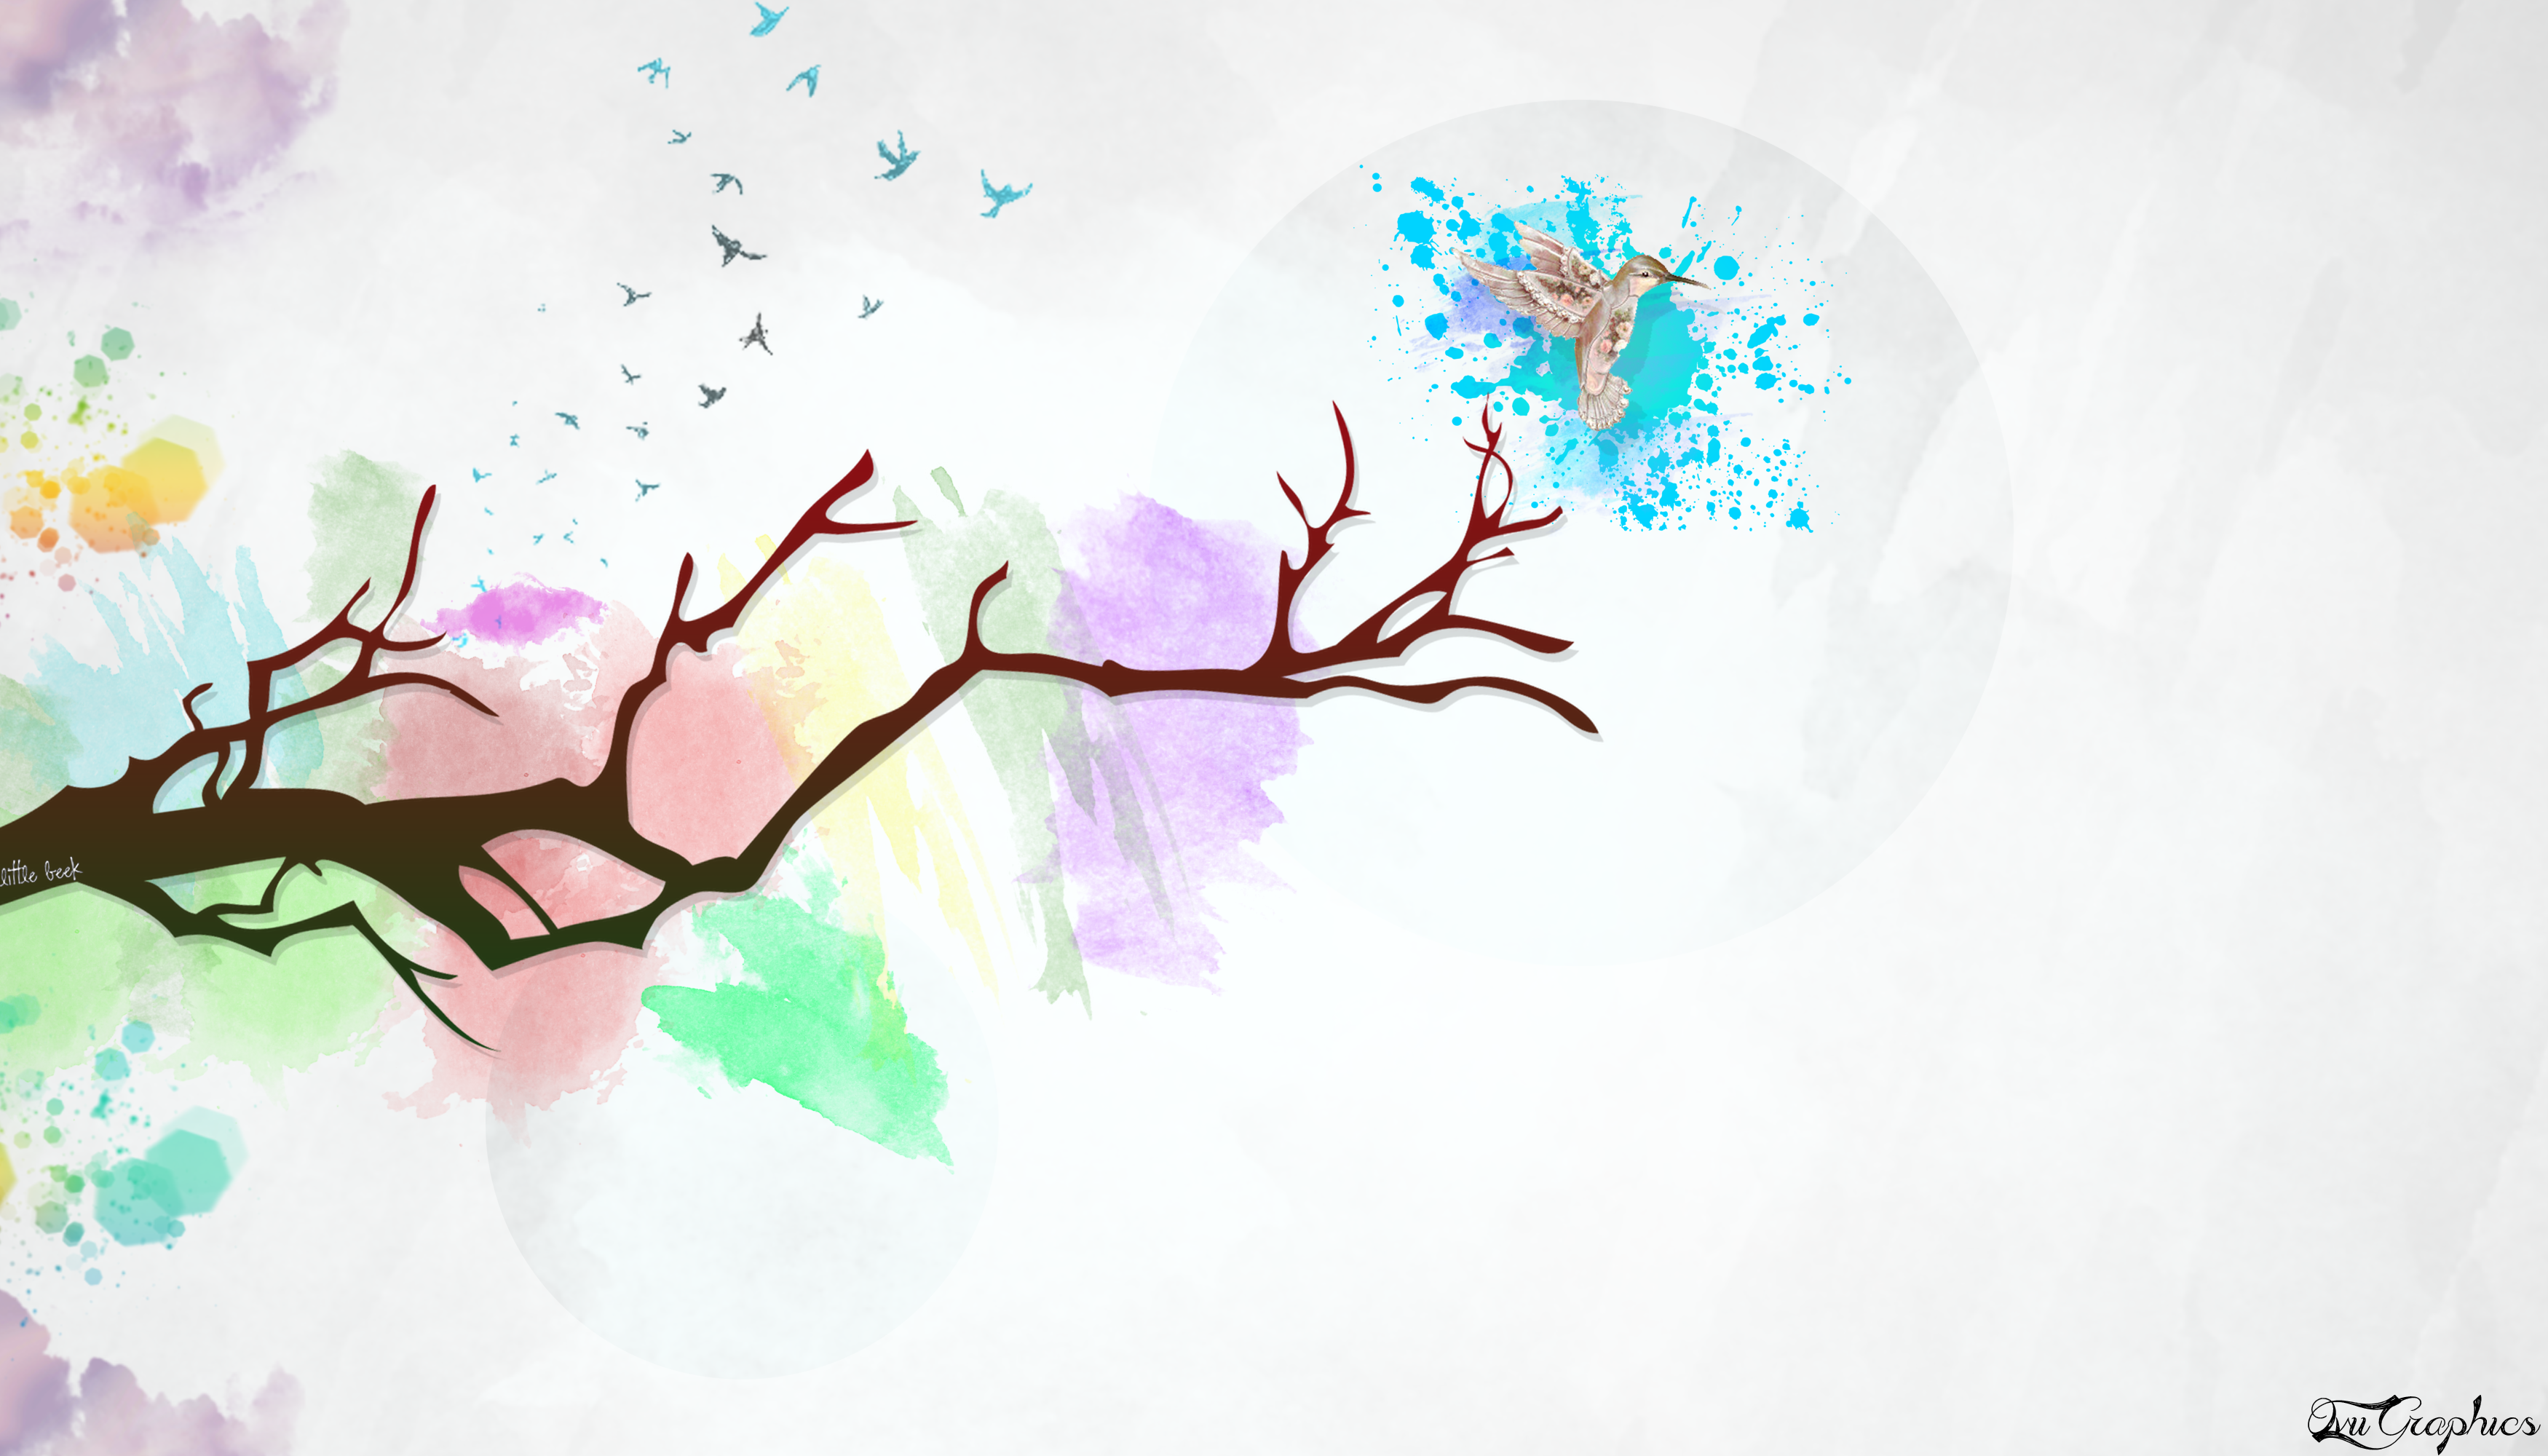 abstract creativity wallpaper hd colorss by oviigraphics